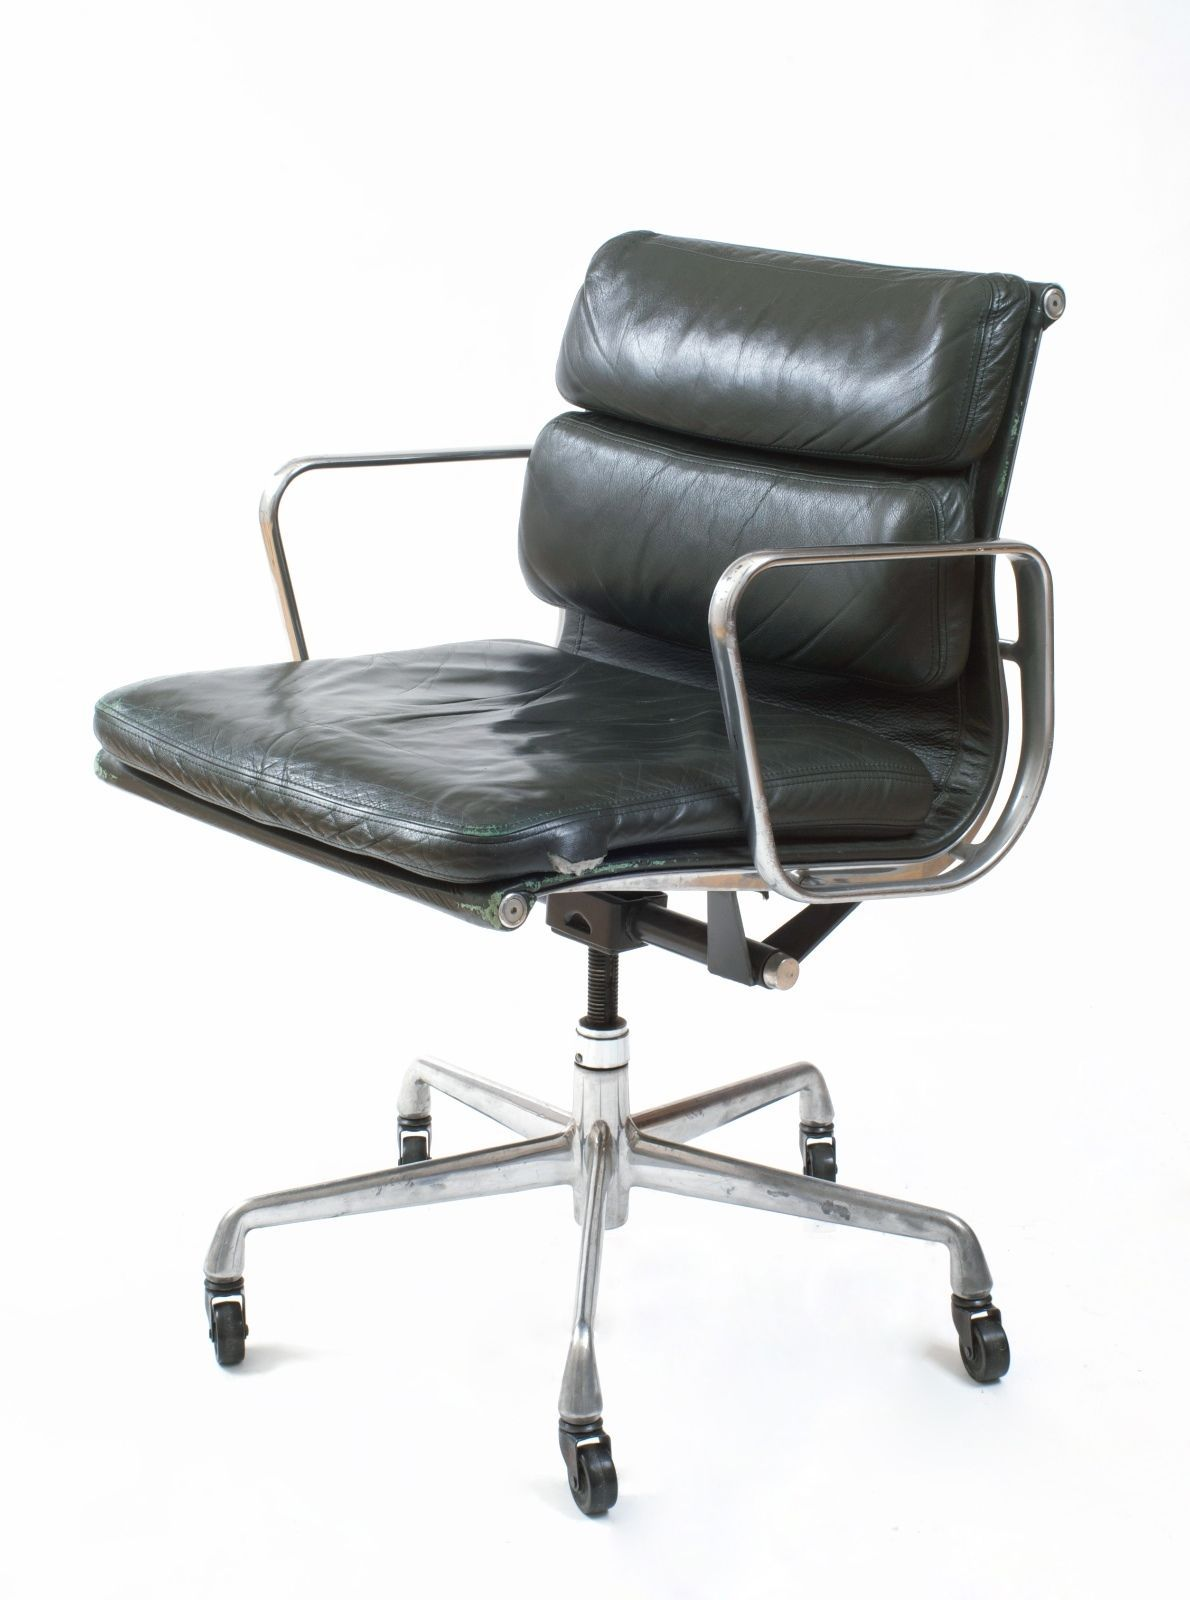 Eames Chair Herman Miller Ebay Vintage Eames Soft Pad Management Chair For Herman Miller Dark